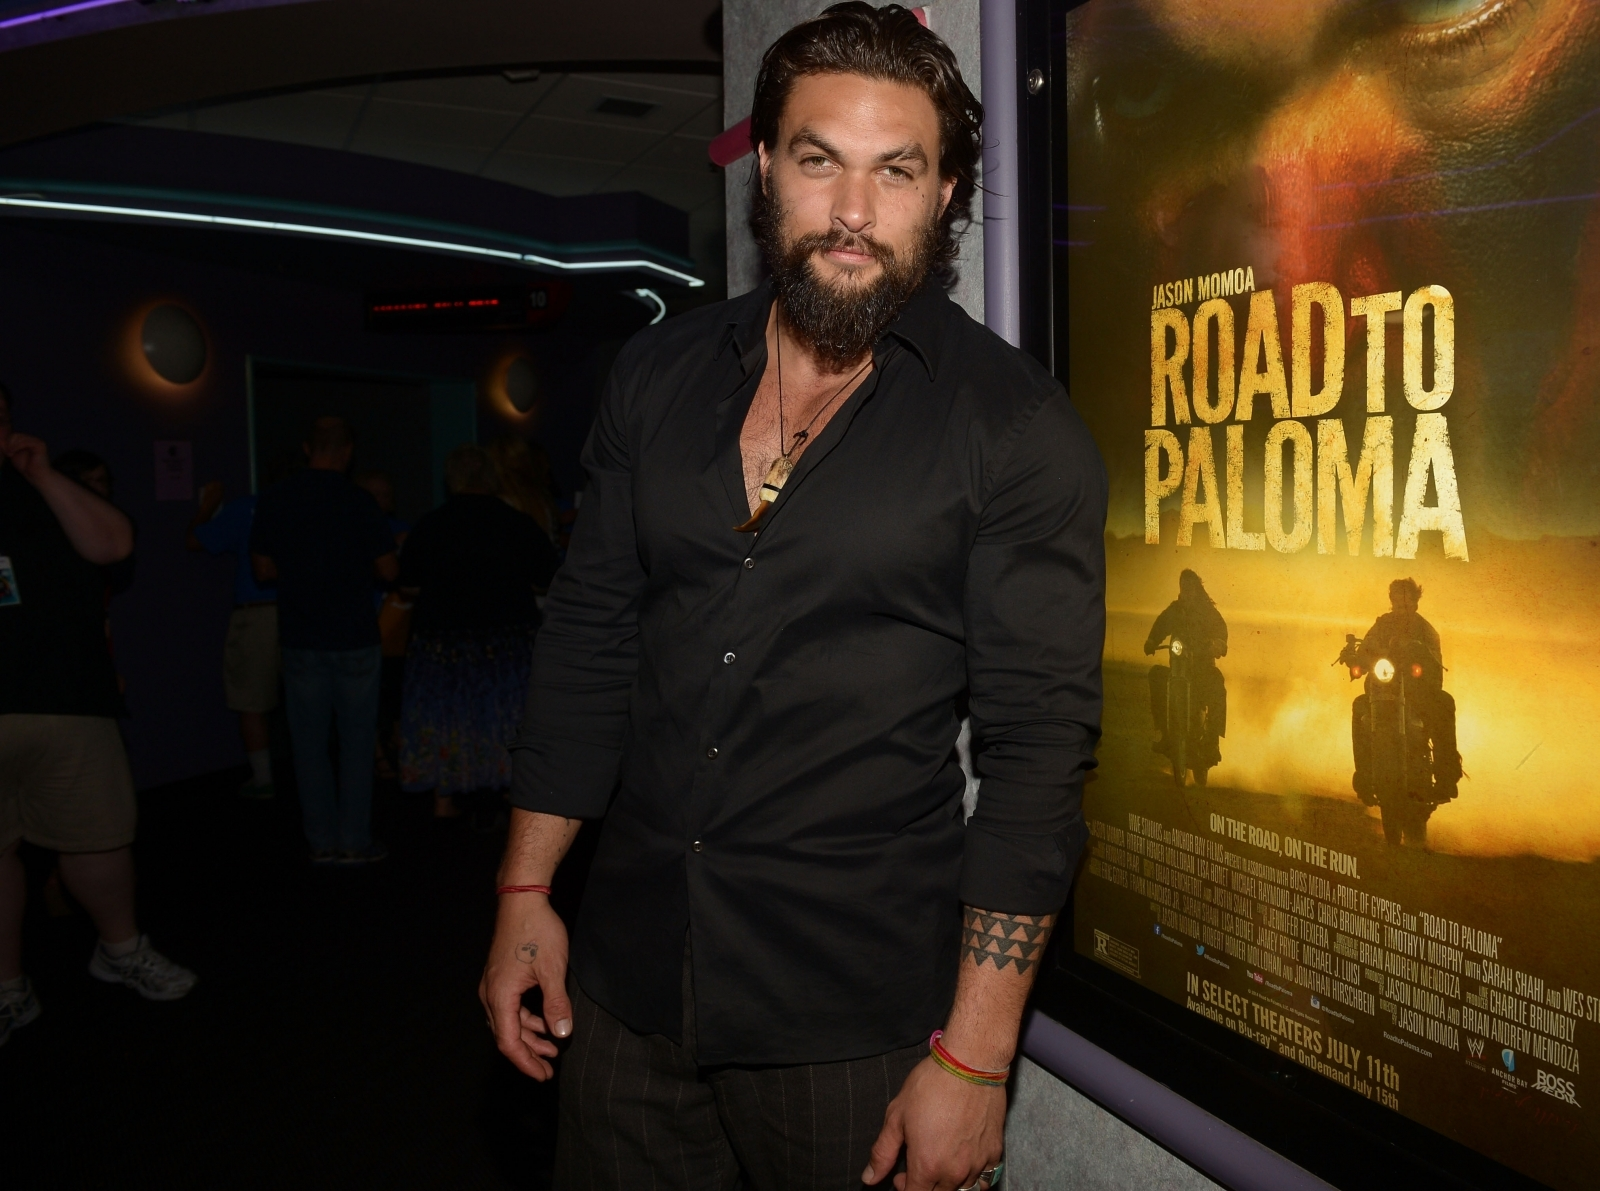 Jason Momoa joked that he loved pretending to